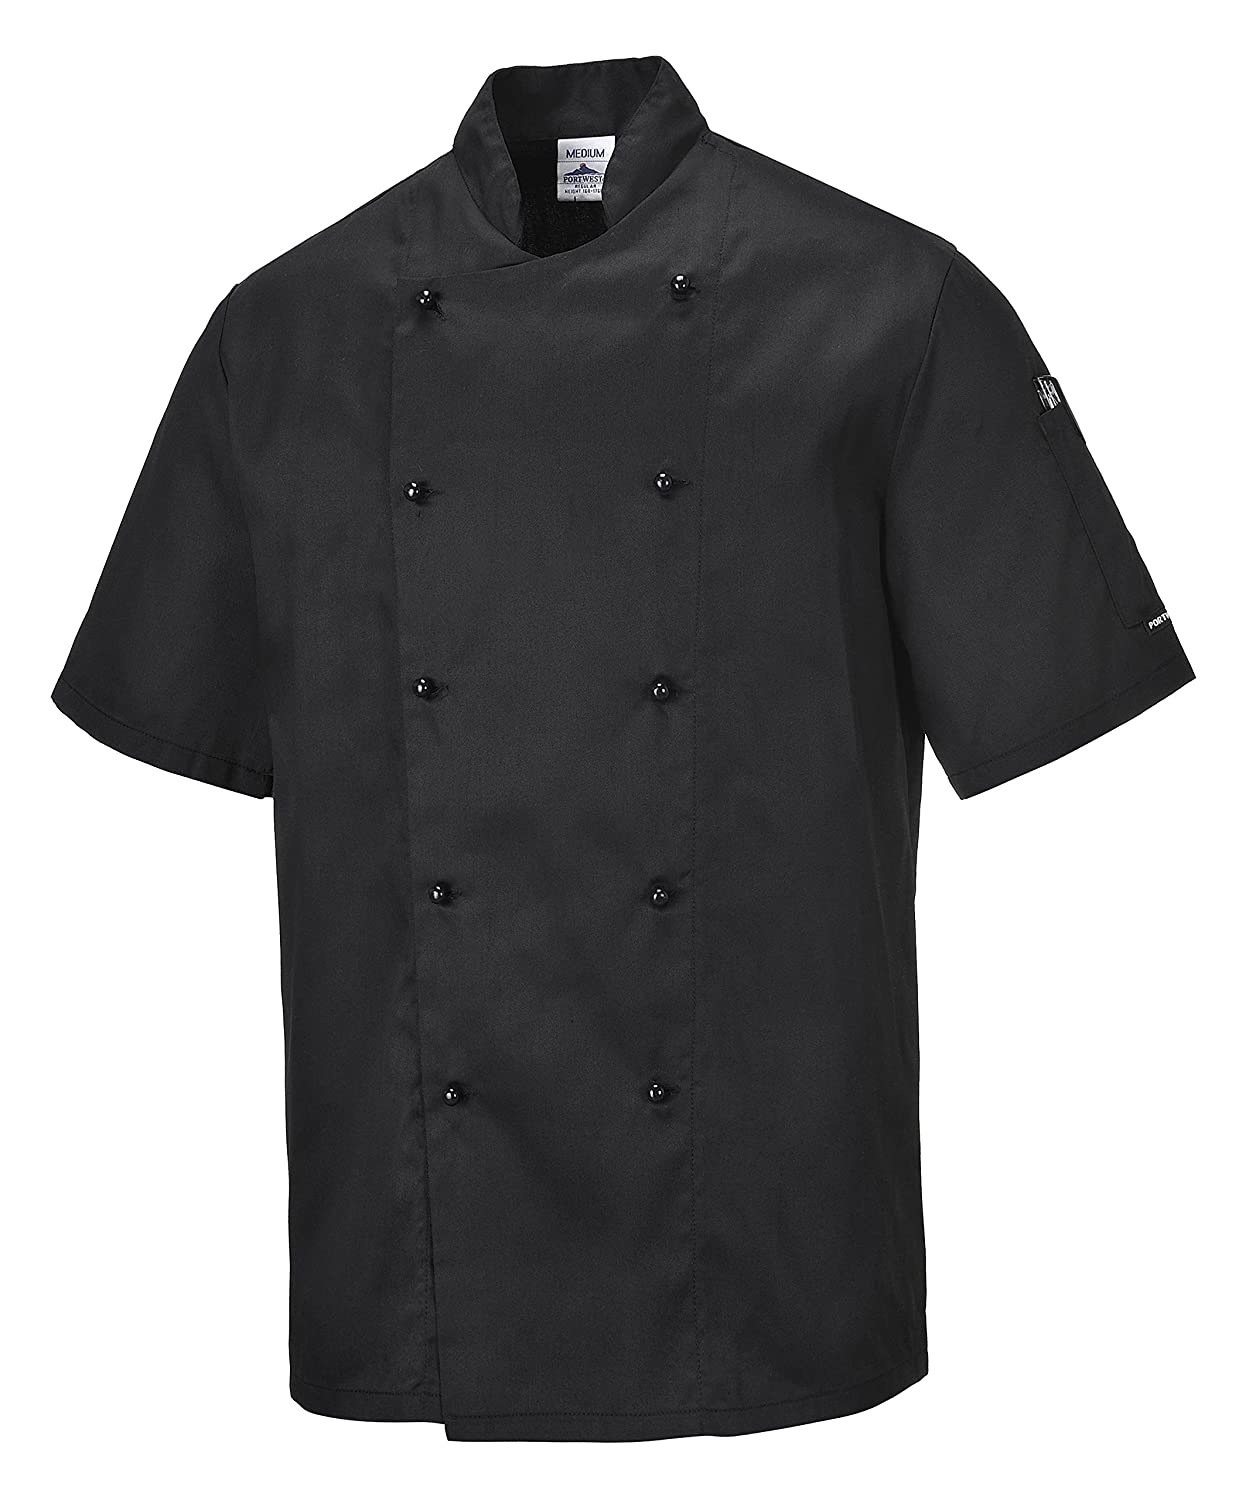 Somerset Chef Jacket Portwest C834RBRXS